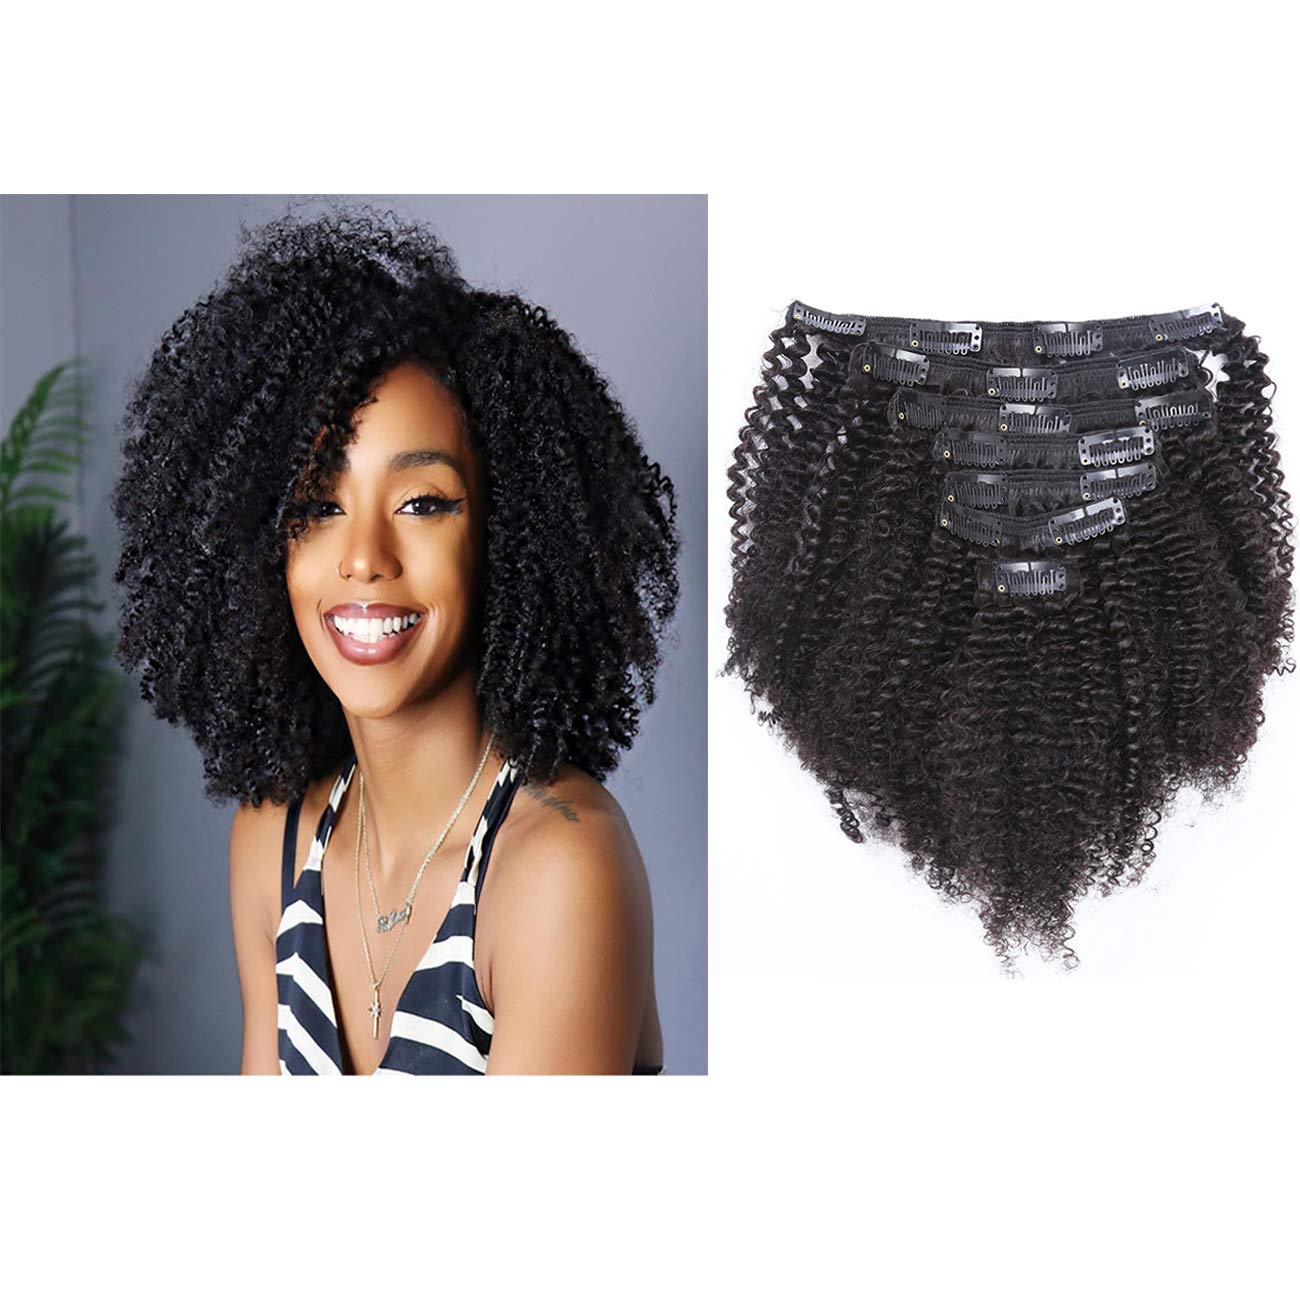 Brazilian Real Human Hair Clip in Extensions Afro Kinkys Curly Clip Ins Brazilian Double Weft Remy Hair African Americans Natural Virgin Hair 8A Full Head For Black Women 7pcs/set 120gram/set 16 Inch by Loxxy